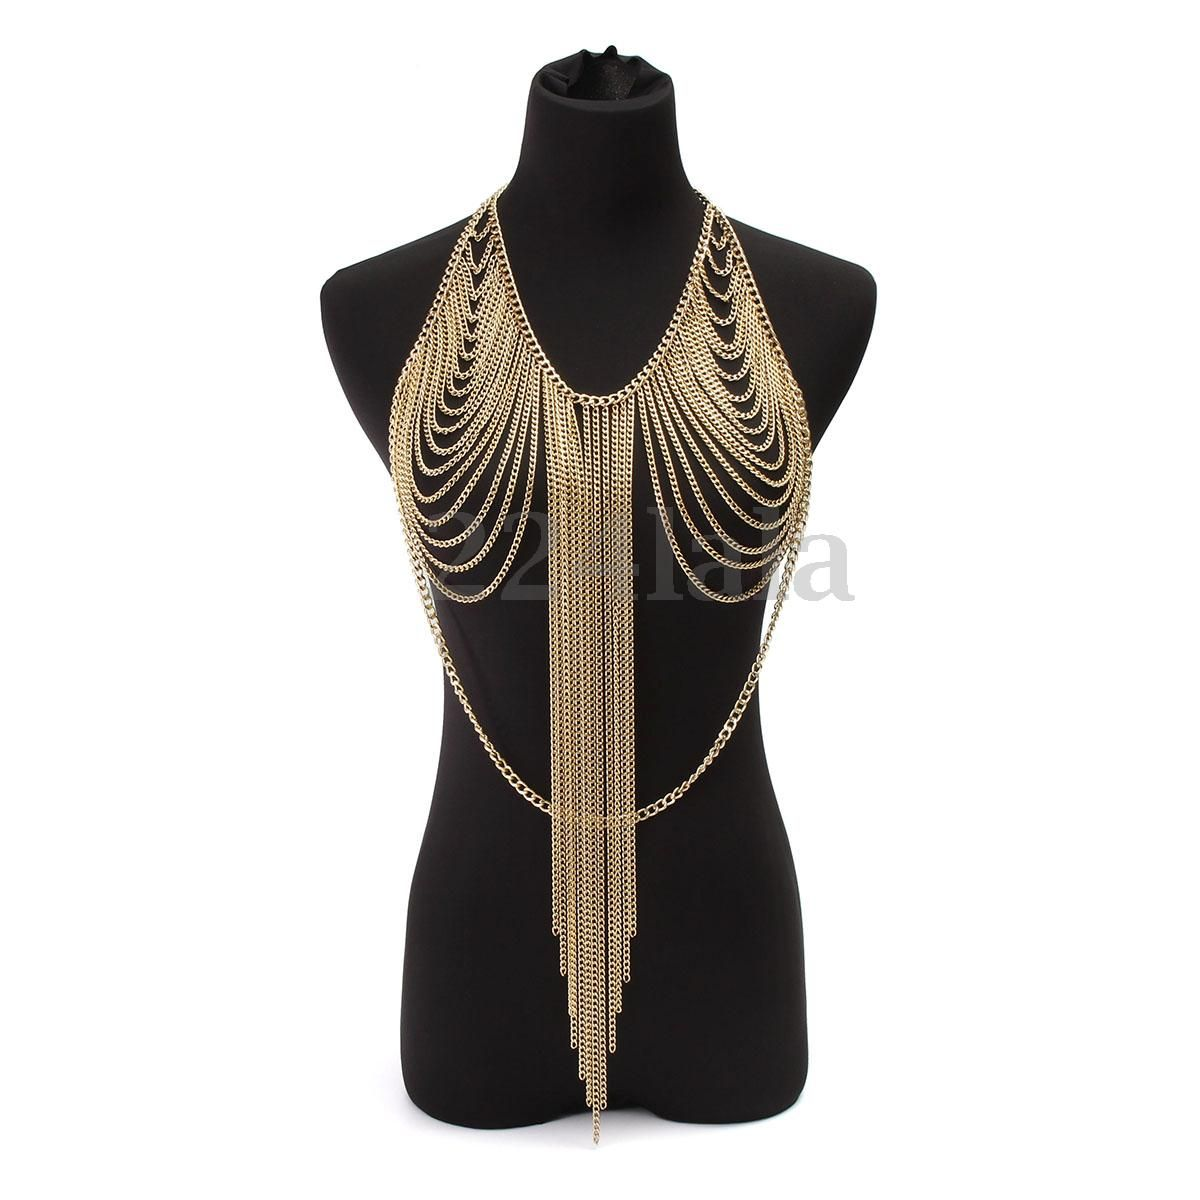 New Women Harness Gold Bridal Fashion Metal Shoulder Chain Body Necklace Jewelry